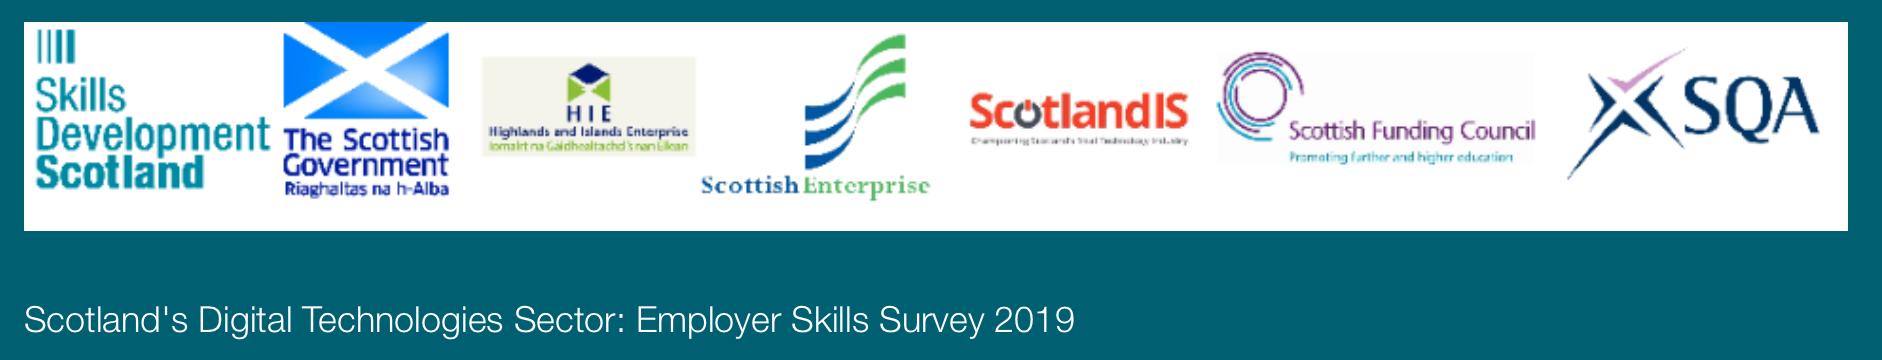 Help please! Skills Development Scotland analysis of the digital technologies sector